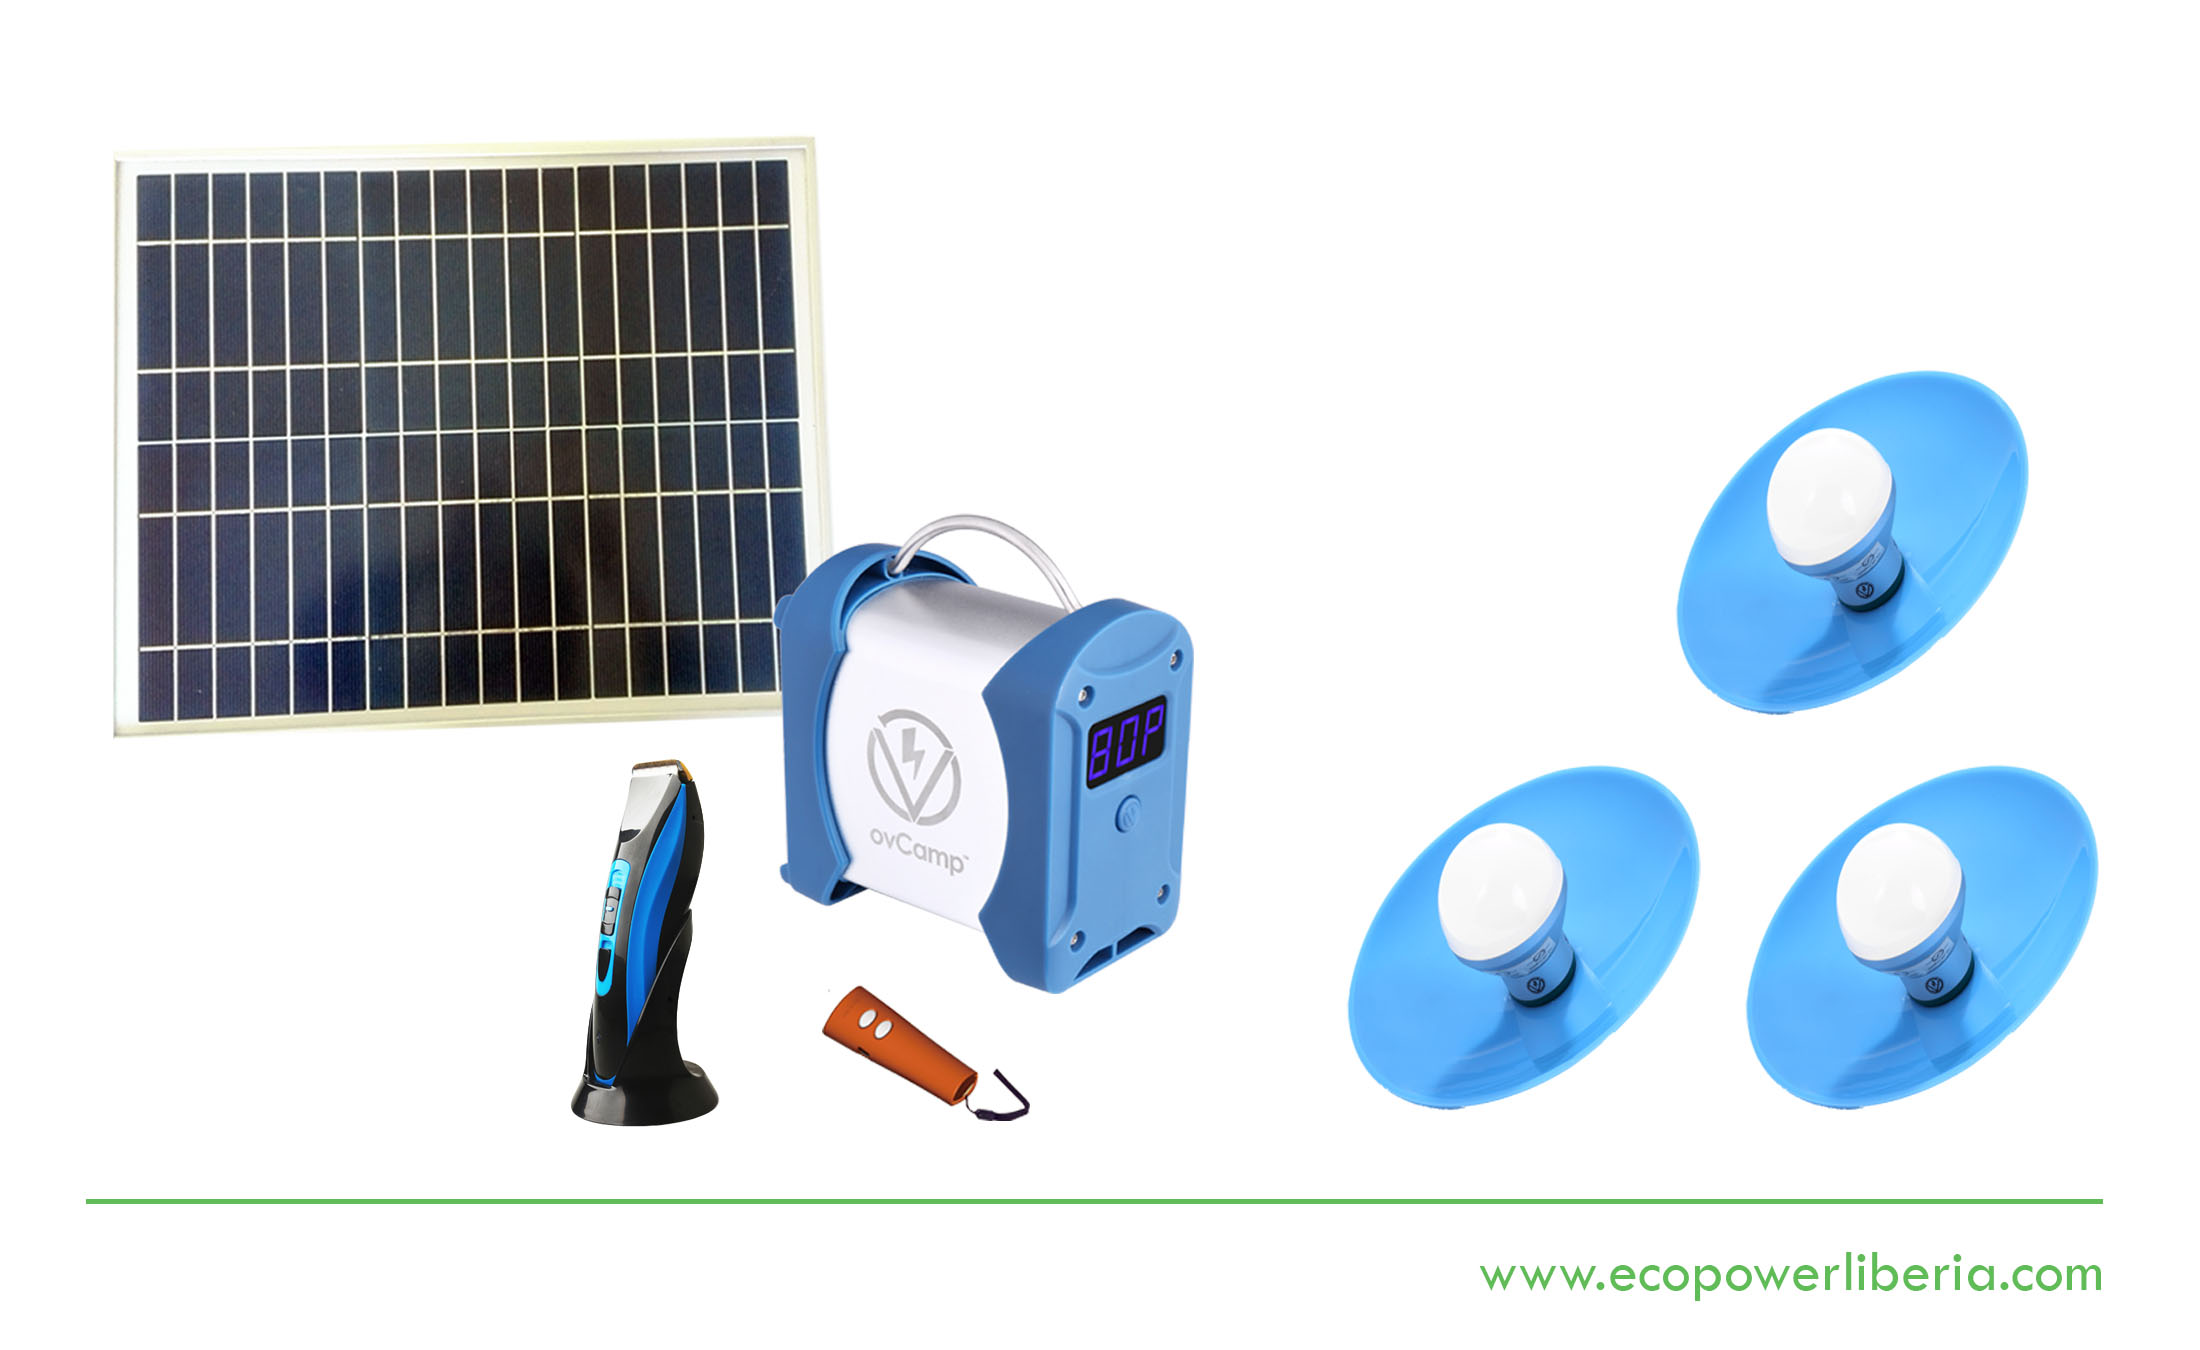 Package 3Eco